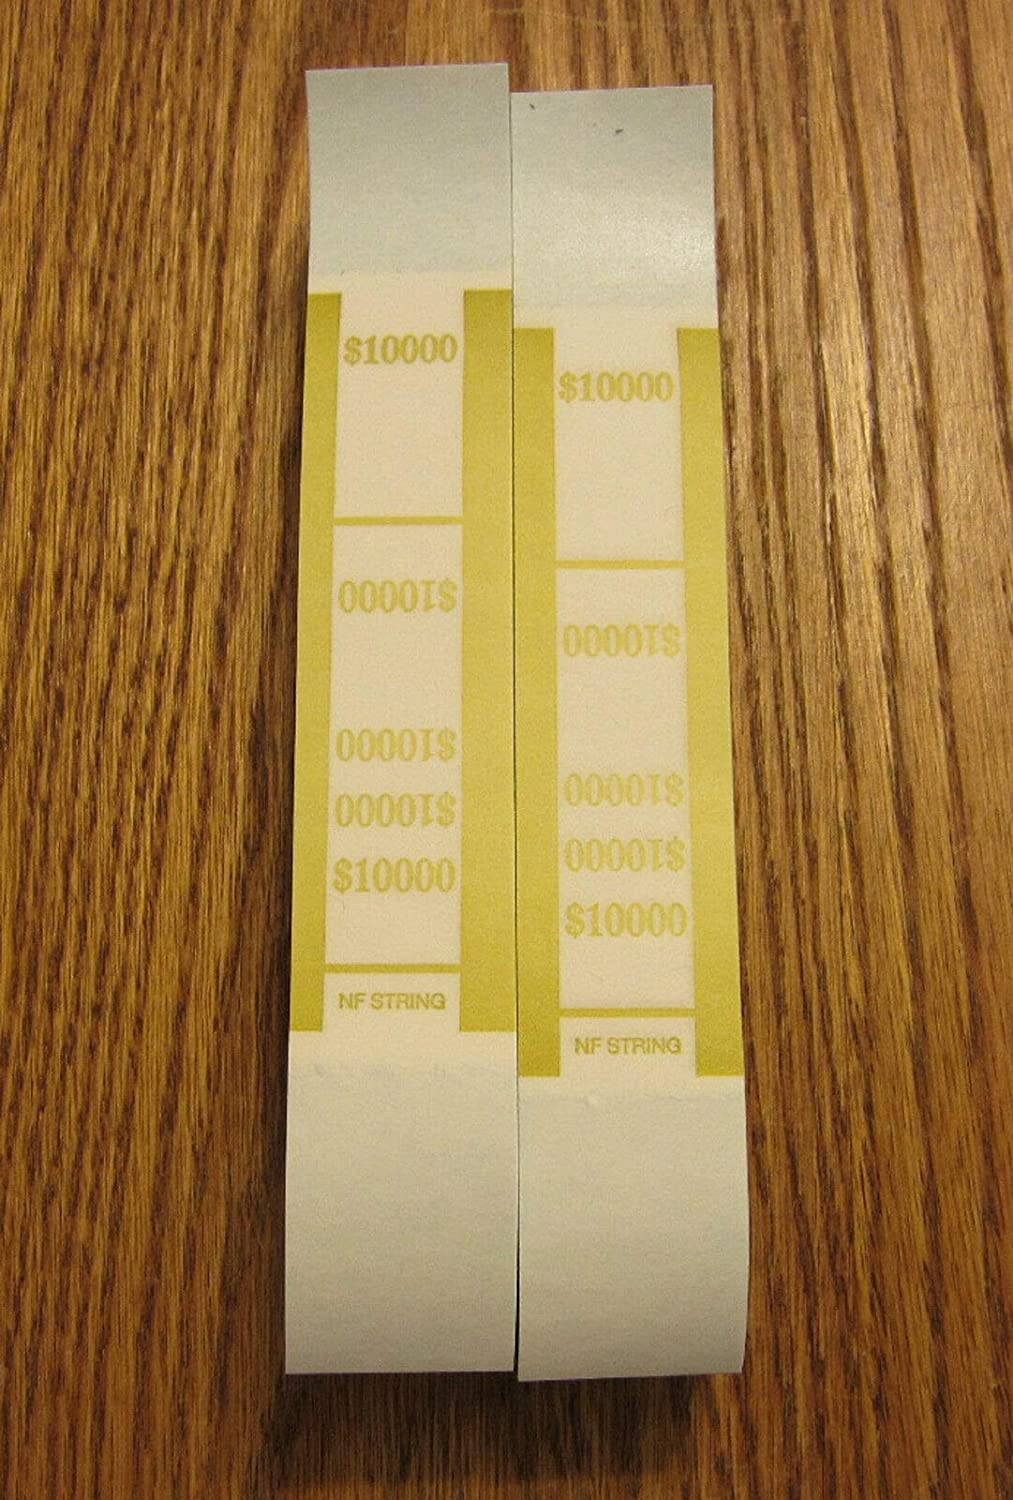 100 SELF Sealing Currency Straps Money Bands Bill PMC Price reduction $10000 Max 89% OFF